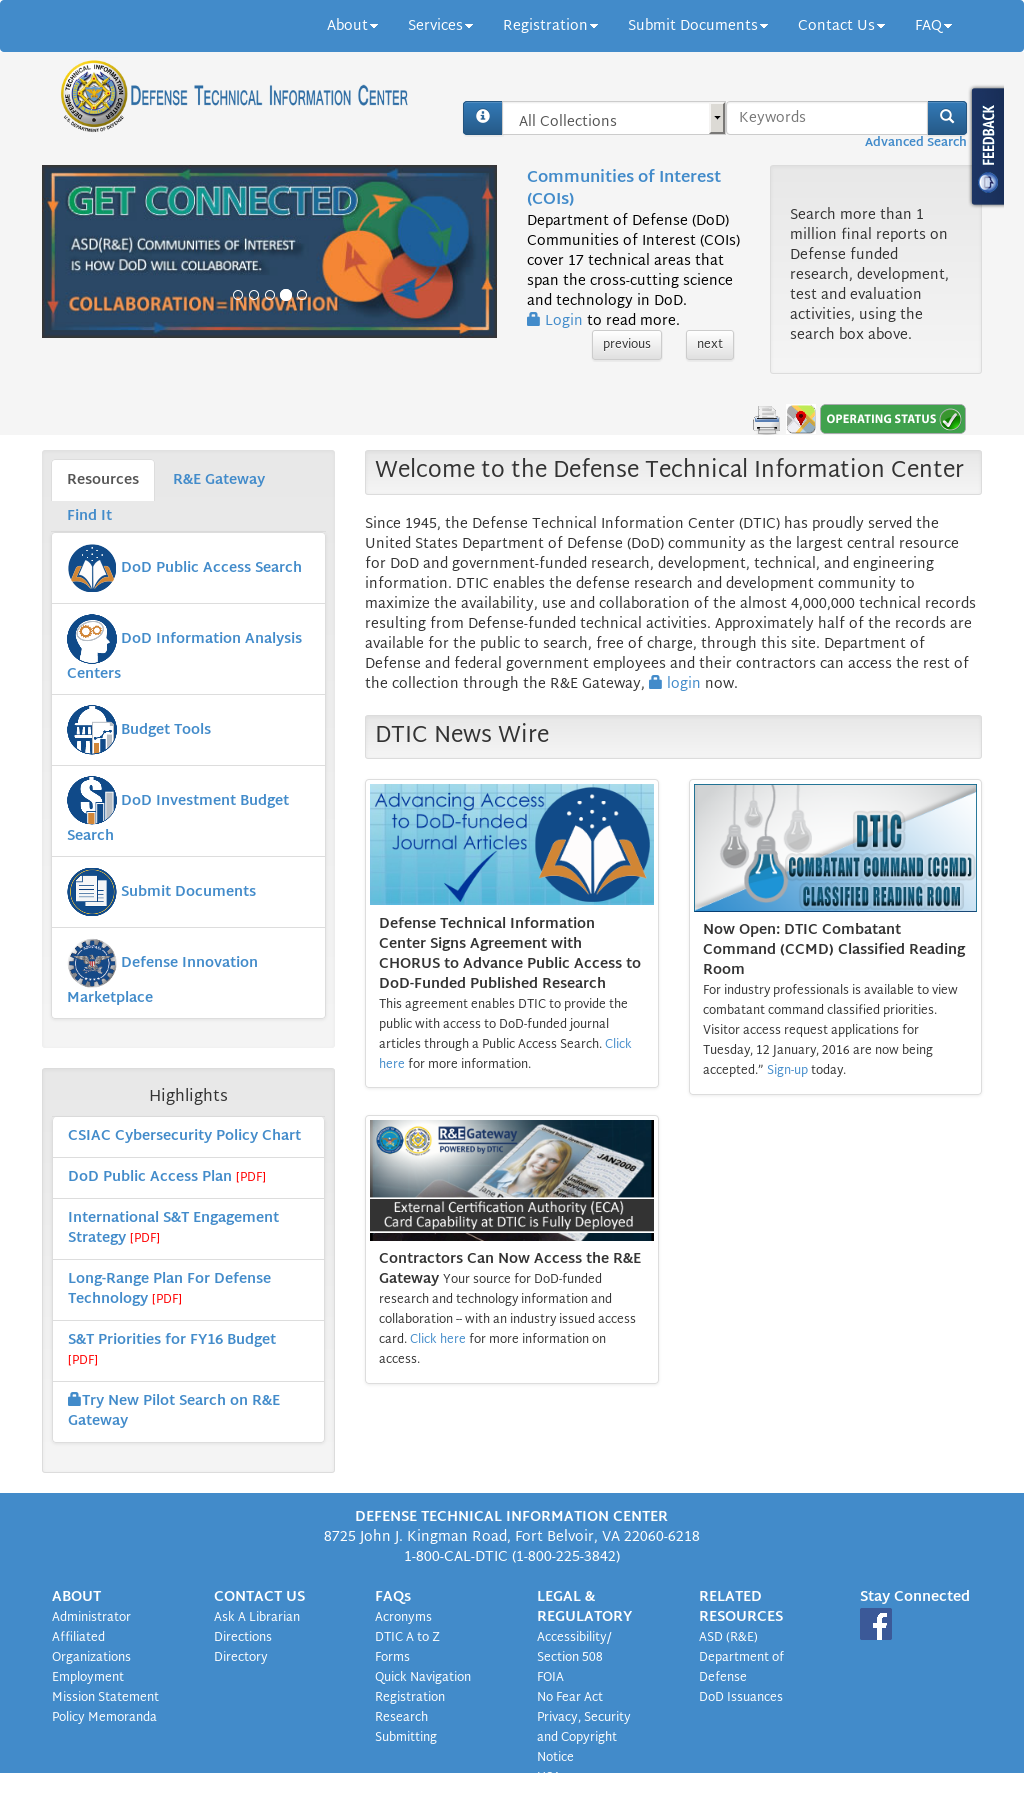 DTIC Competitors, Revenue and Employees - Owler Company Profile